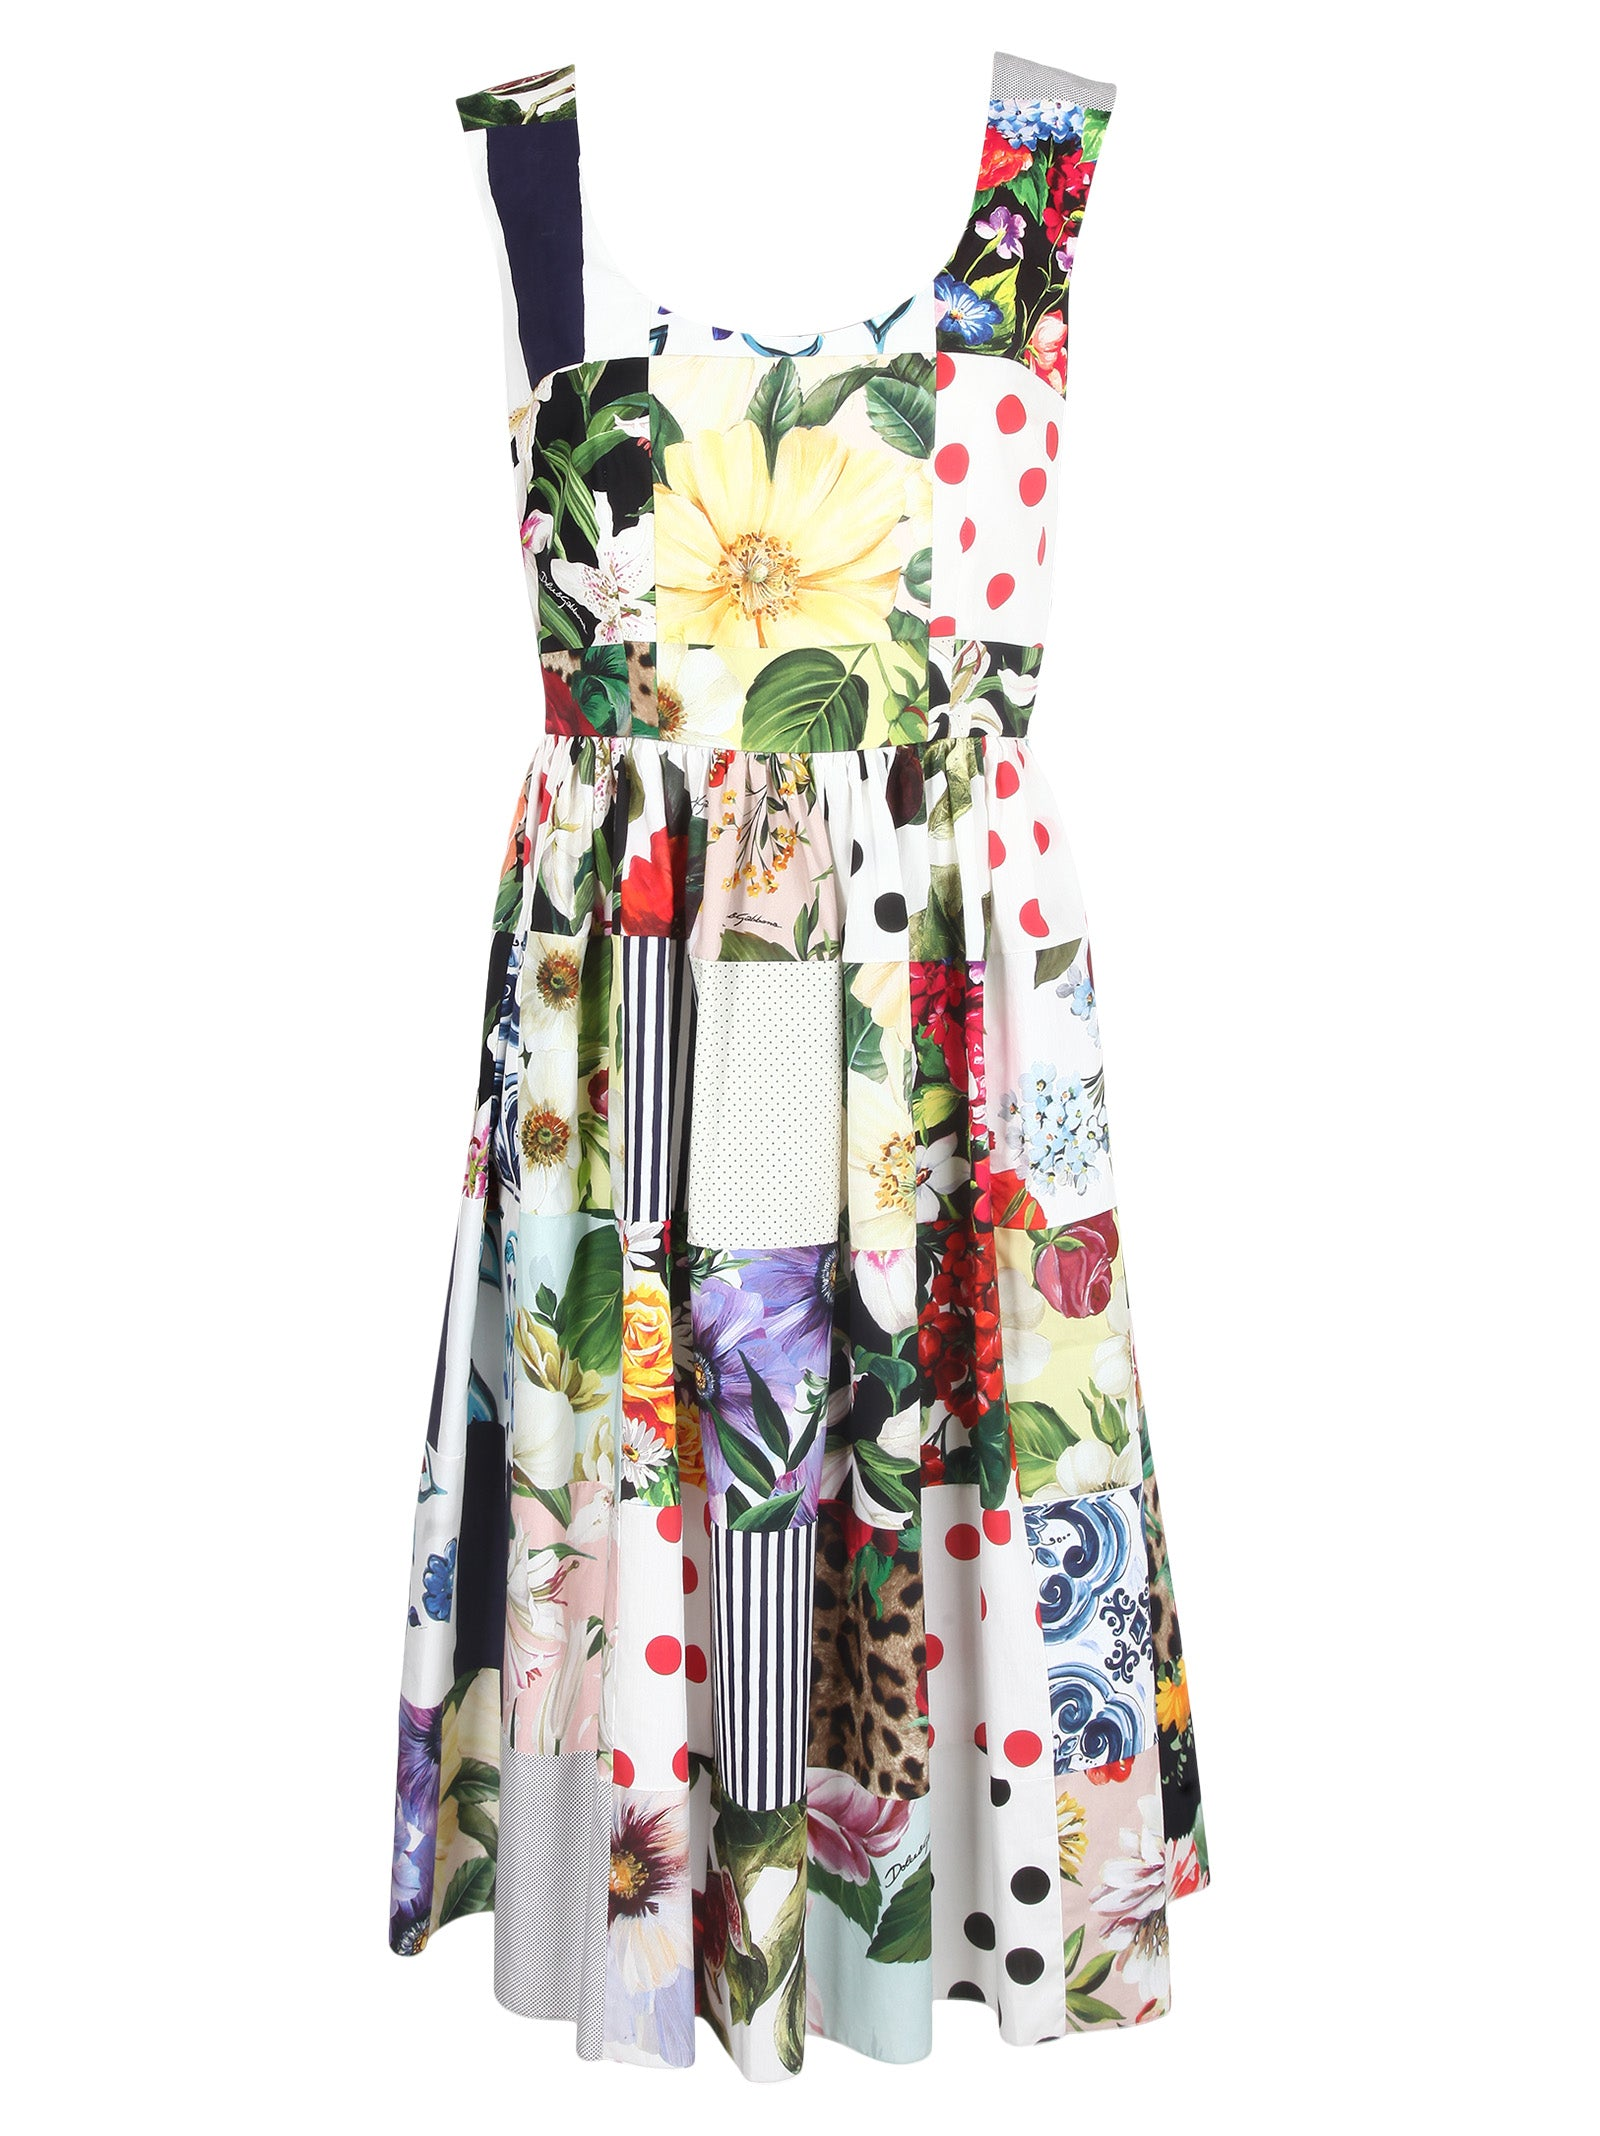 Dolce & Gabbana DOLCE & GABBANA FLORAL PATCHWORK DRESS